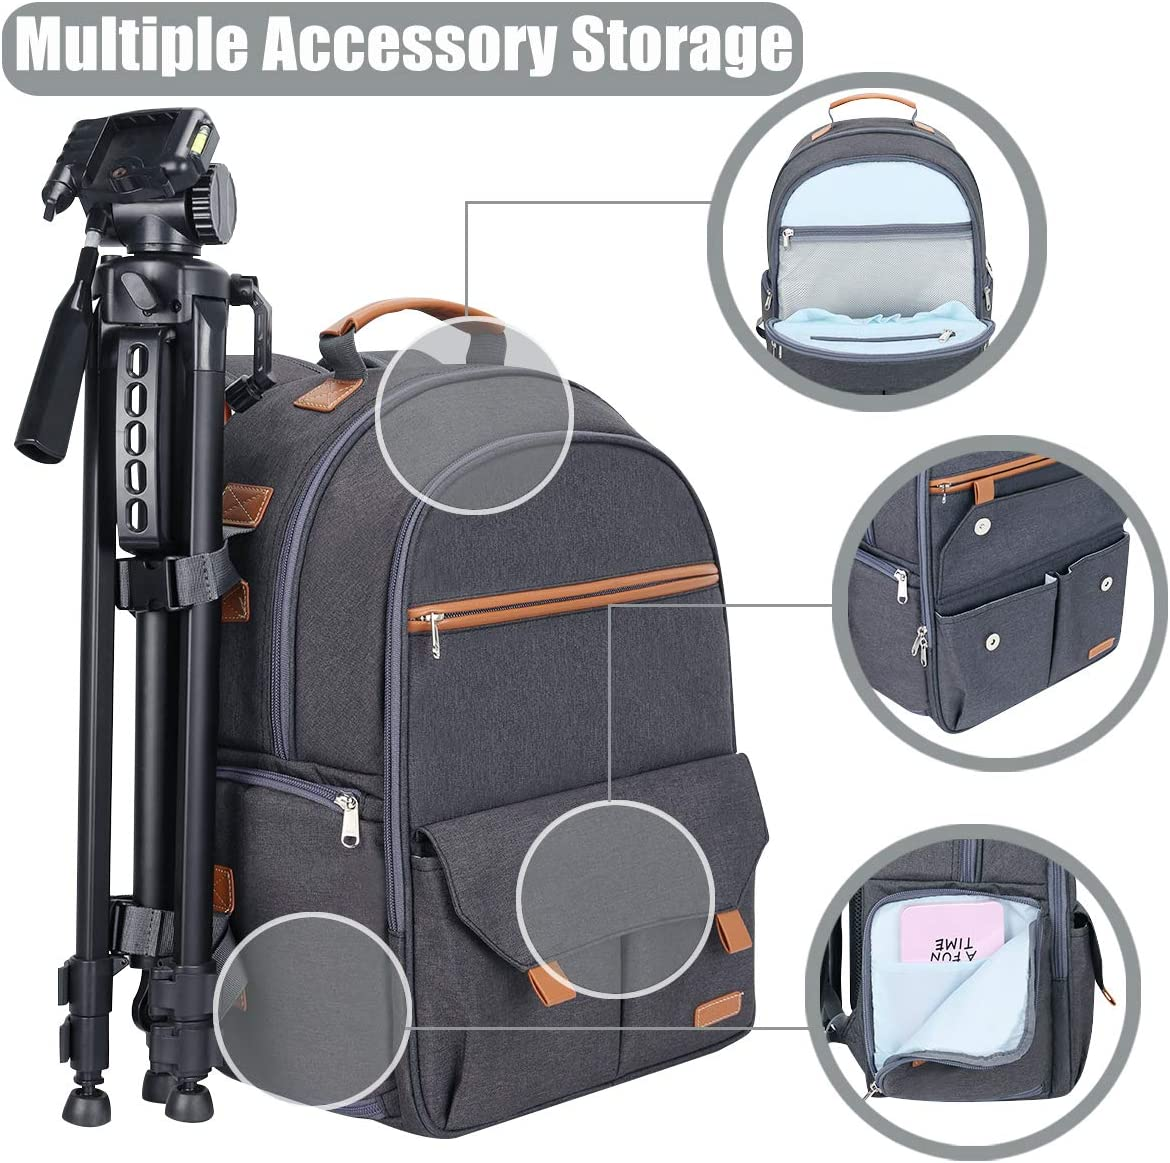 Cool Gray Endurax Waterproof Camera Backpack for Women and Men Fits 15.6 Laptop with Build-in DSLR Shoulder Photographer Bag